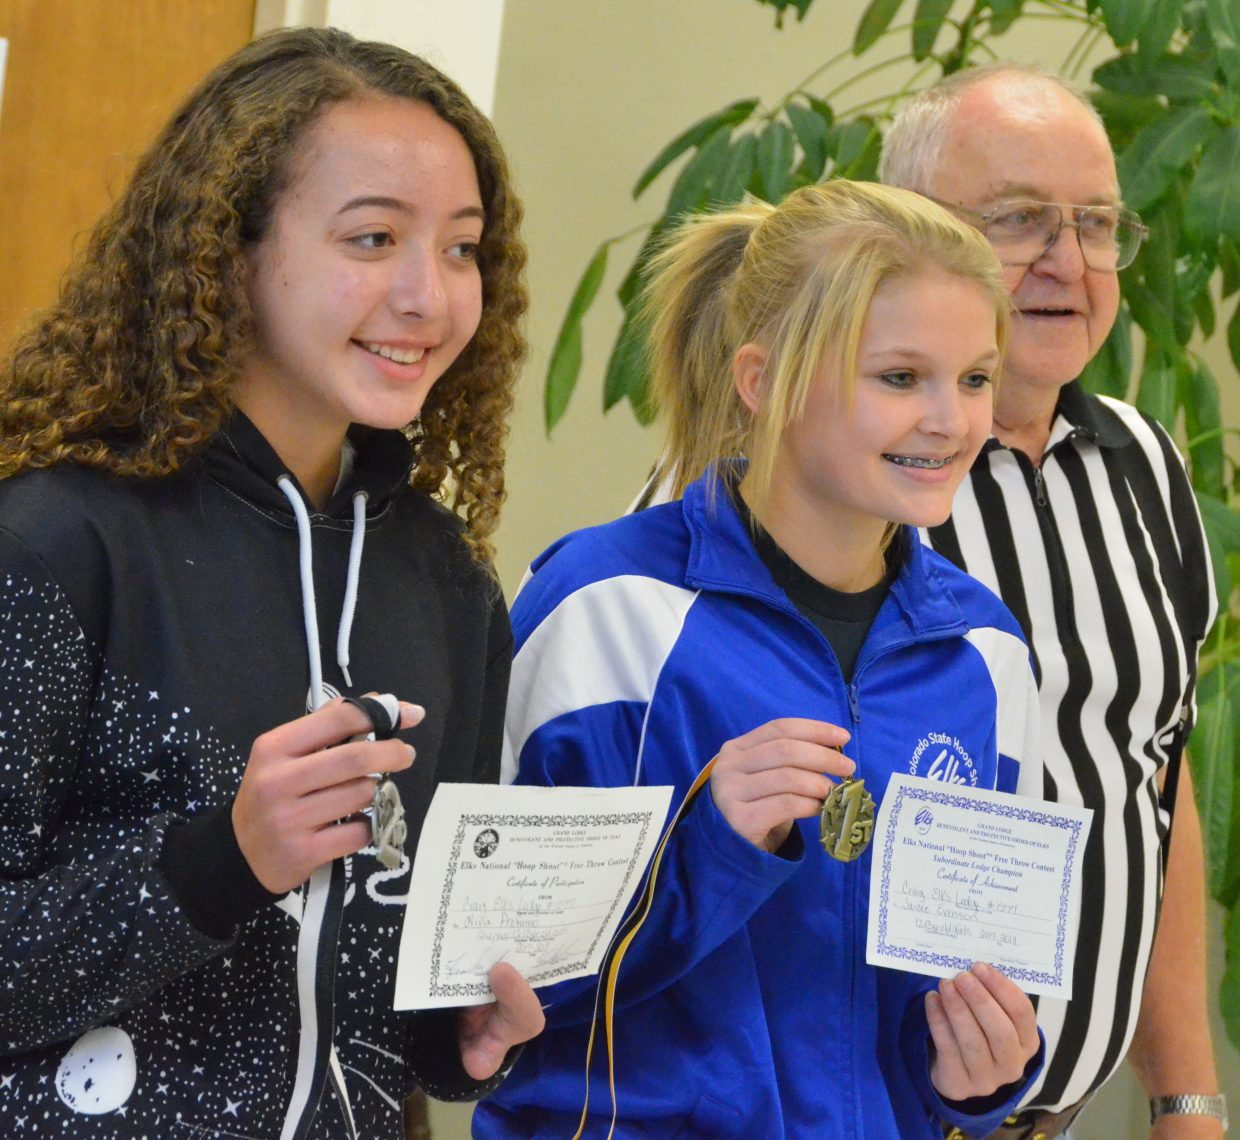 From left, Olivia Profumo and Jacie Evenson display second- and first-place medals provided by Frank Sadvar as the local winners of the  12- and 13-year-old division of the Elks National Hoop Shoot Free Throw Contest.